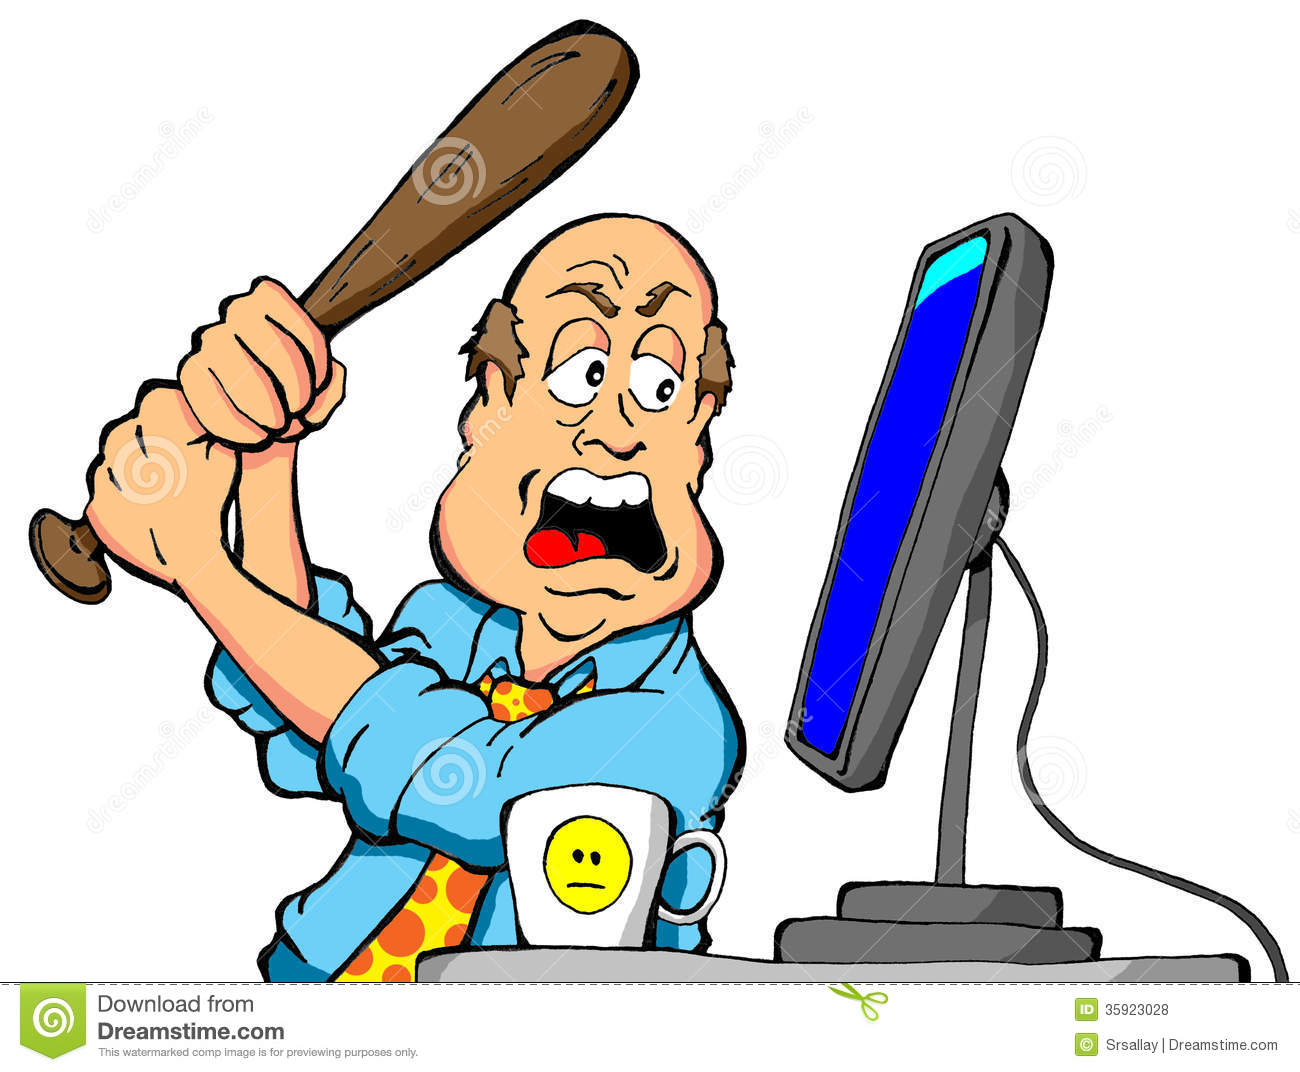 Anger clipart animated Frustrated guy Clipart clipart computer